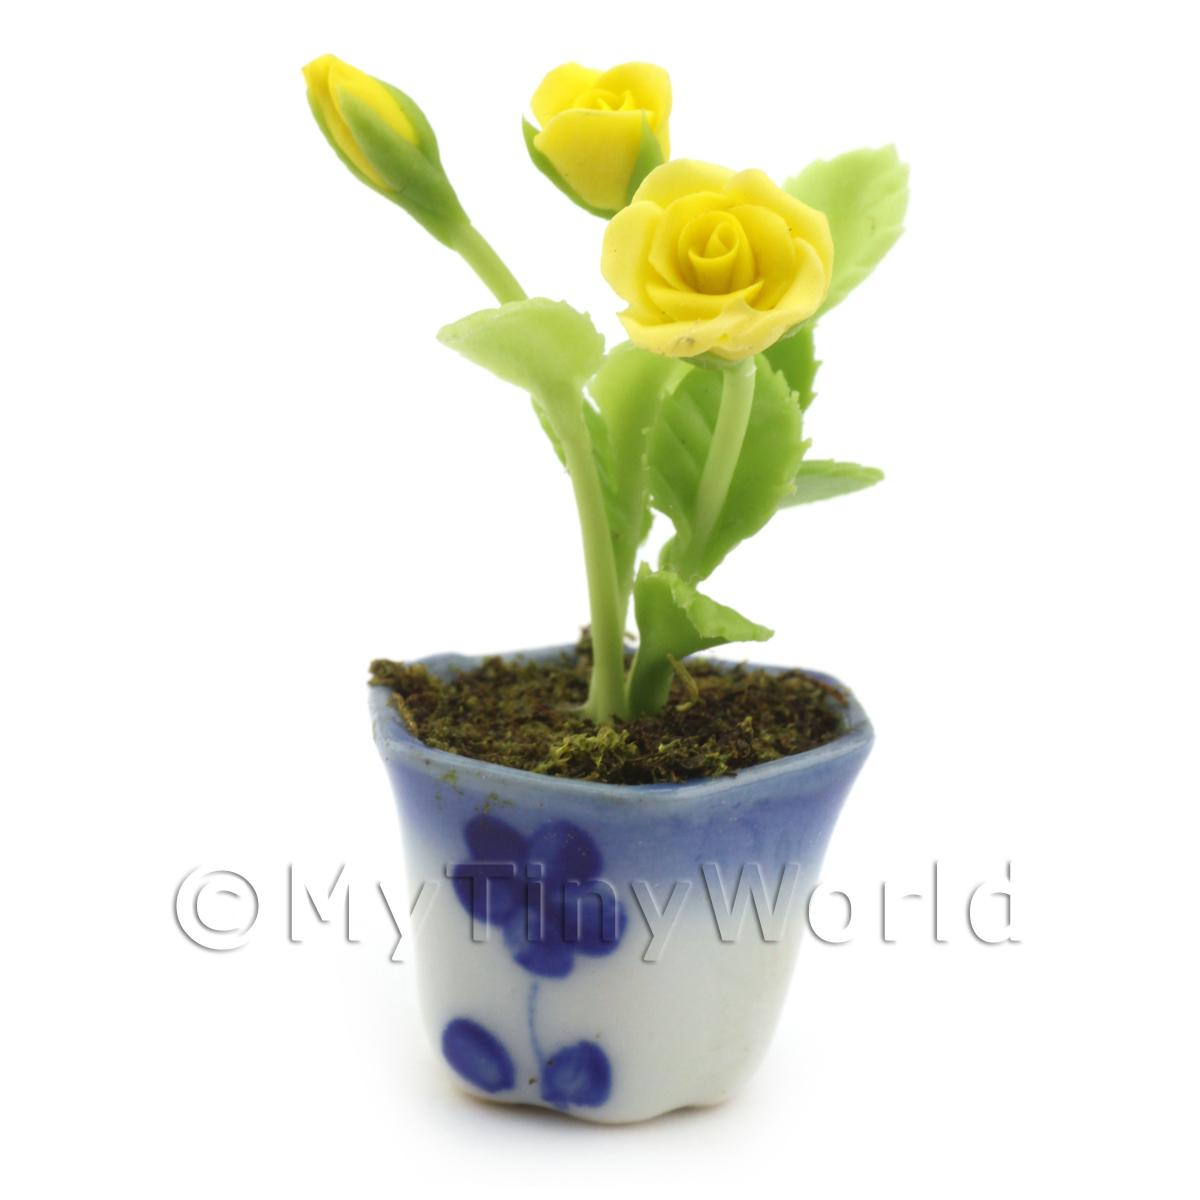 Dolls House Miniature Yellow Roses